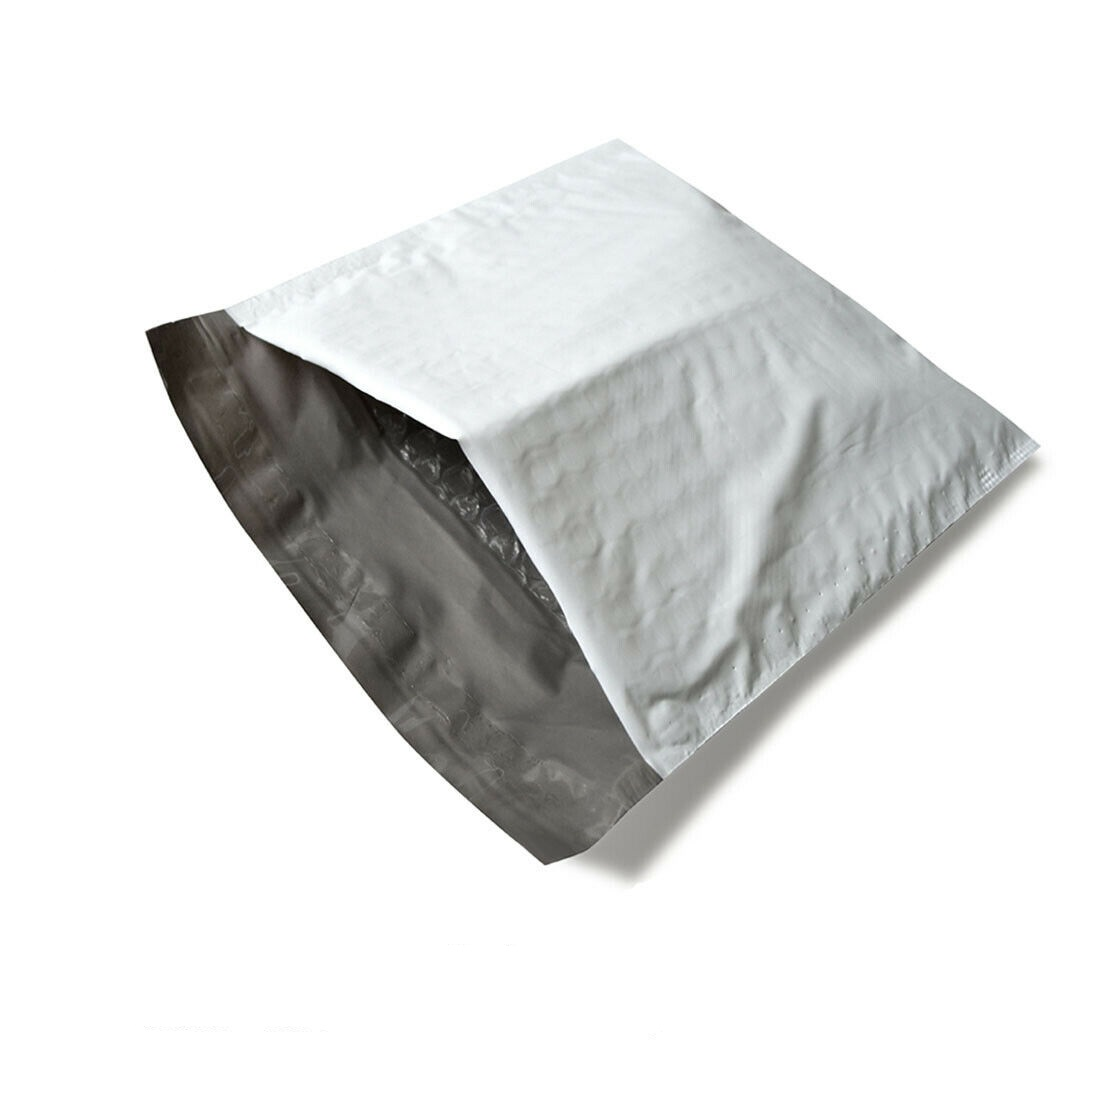 Padded Shipping Envelope Mailers Self Seal and Peal Strip 12.5x19 Inch MMBM Poly Bubble Mailer 100 Pack